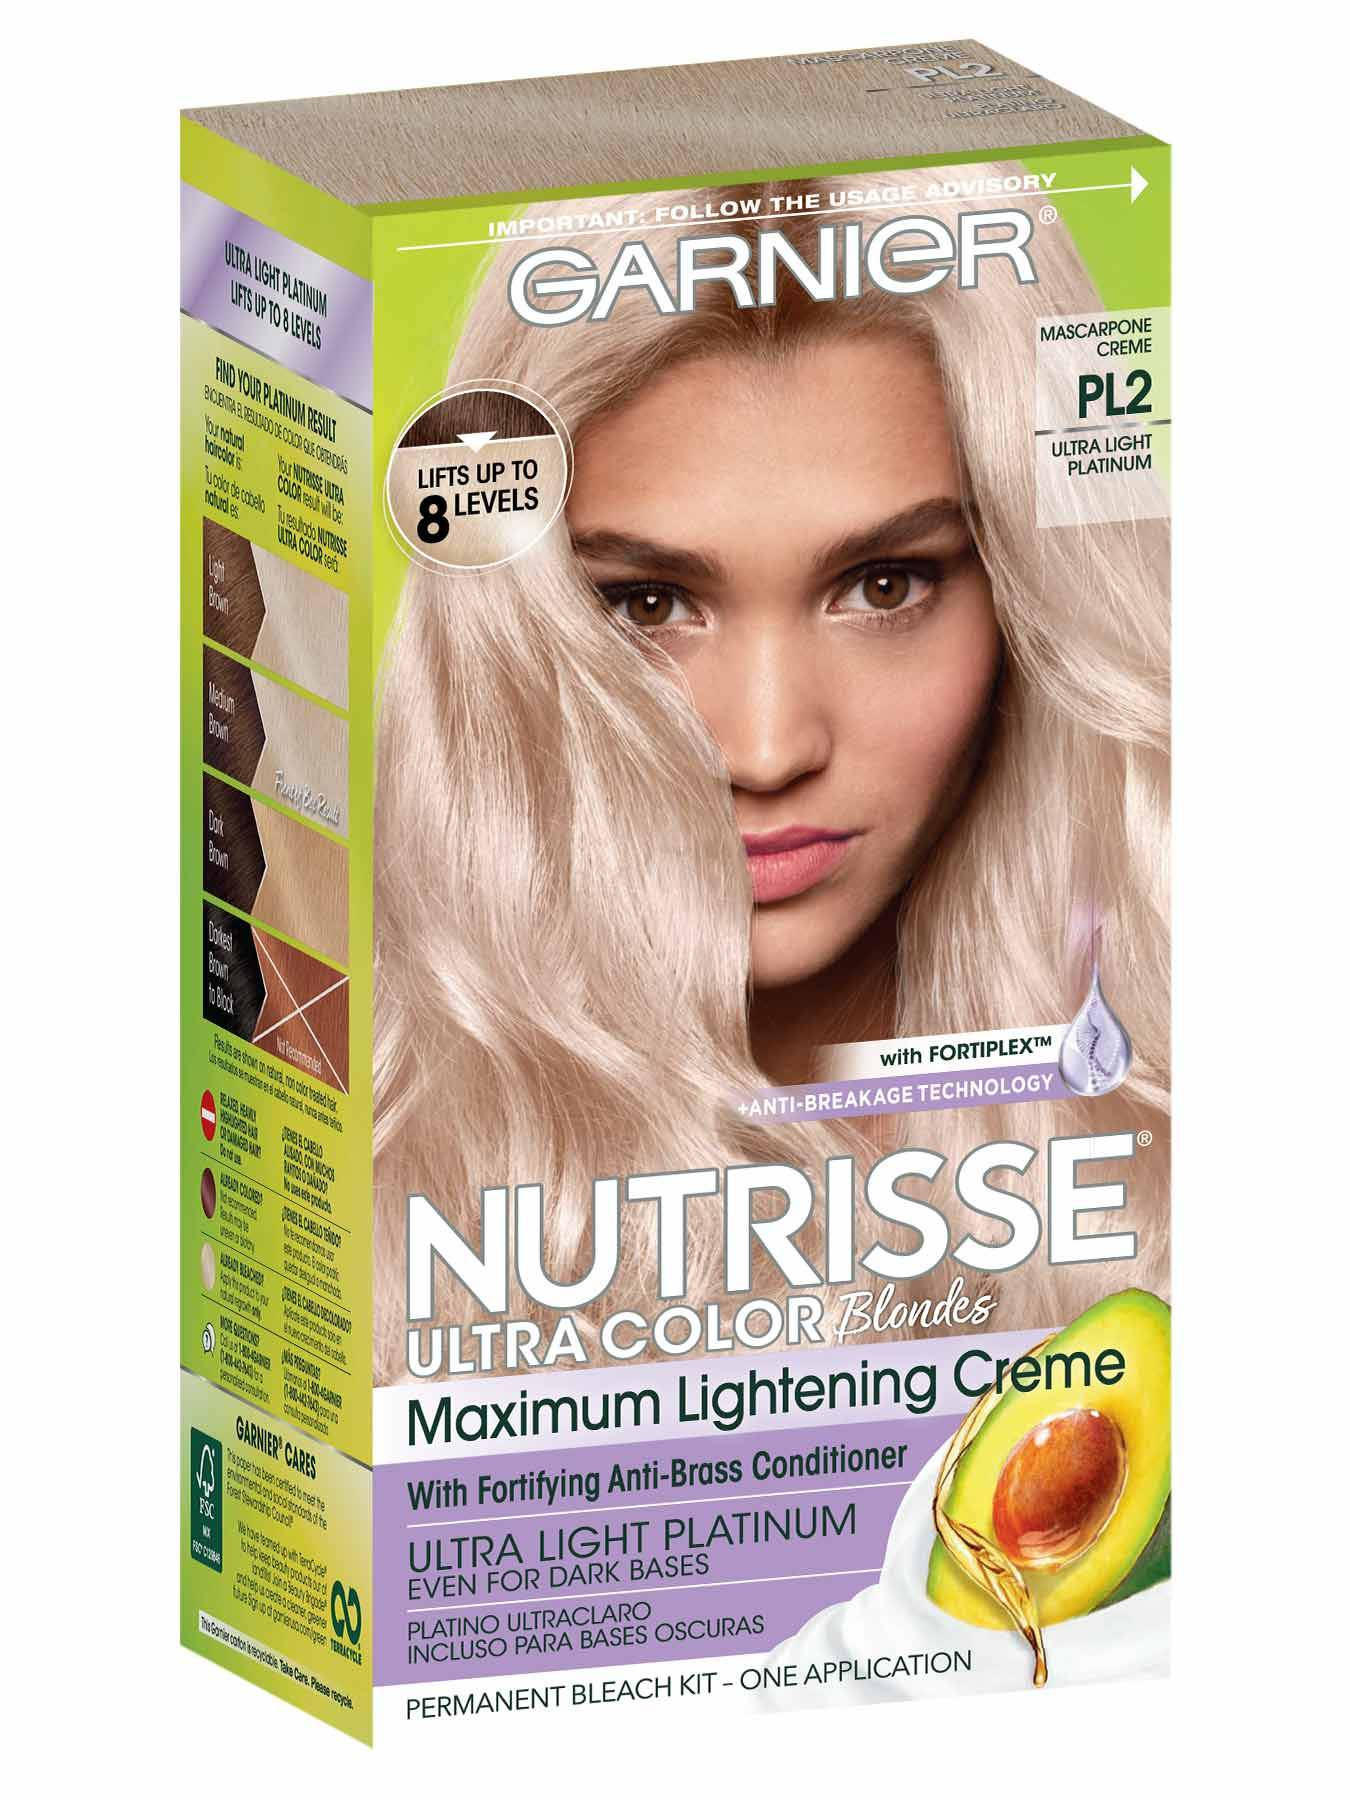 Nutrisse Ultra-Color - Ultra Light Platinum Hair Color - Garnier